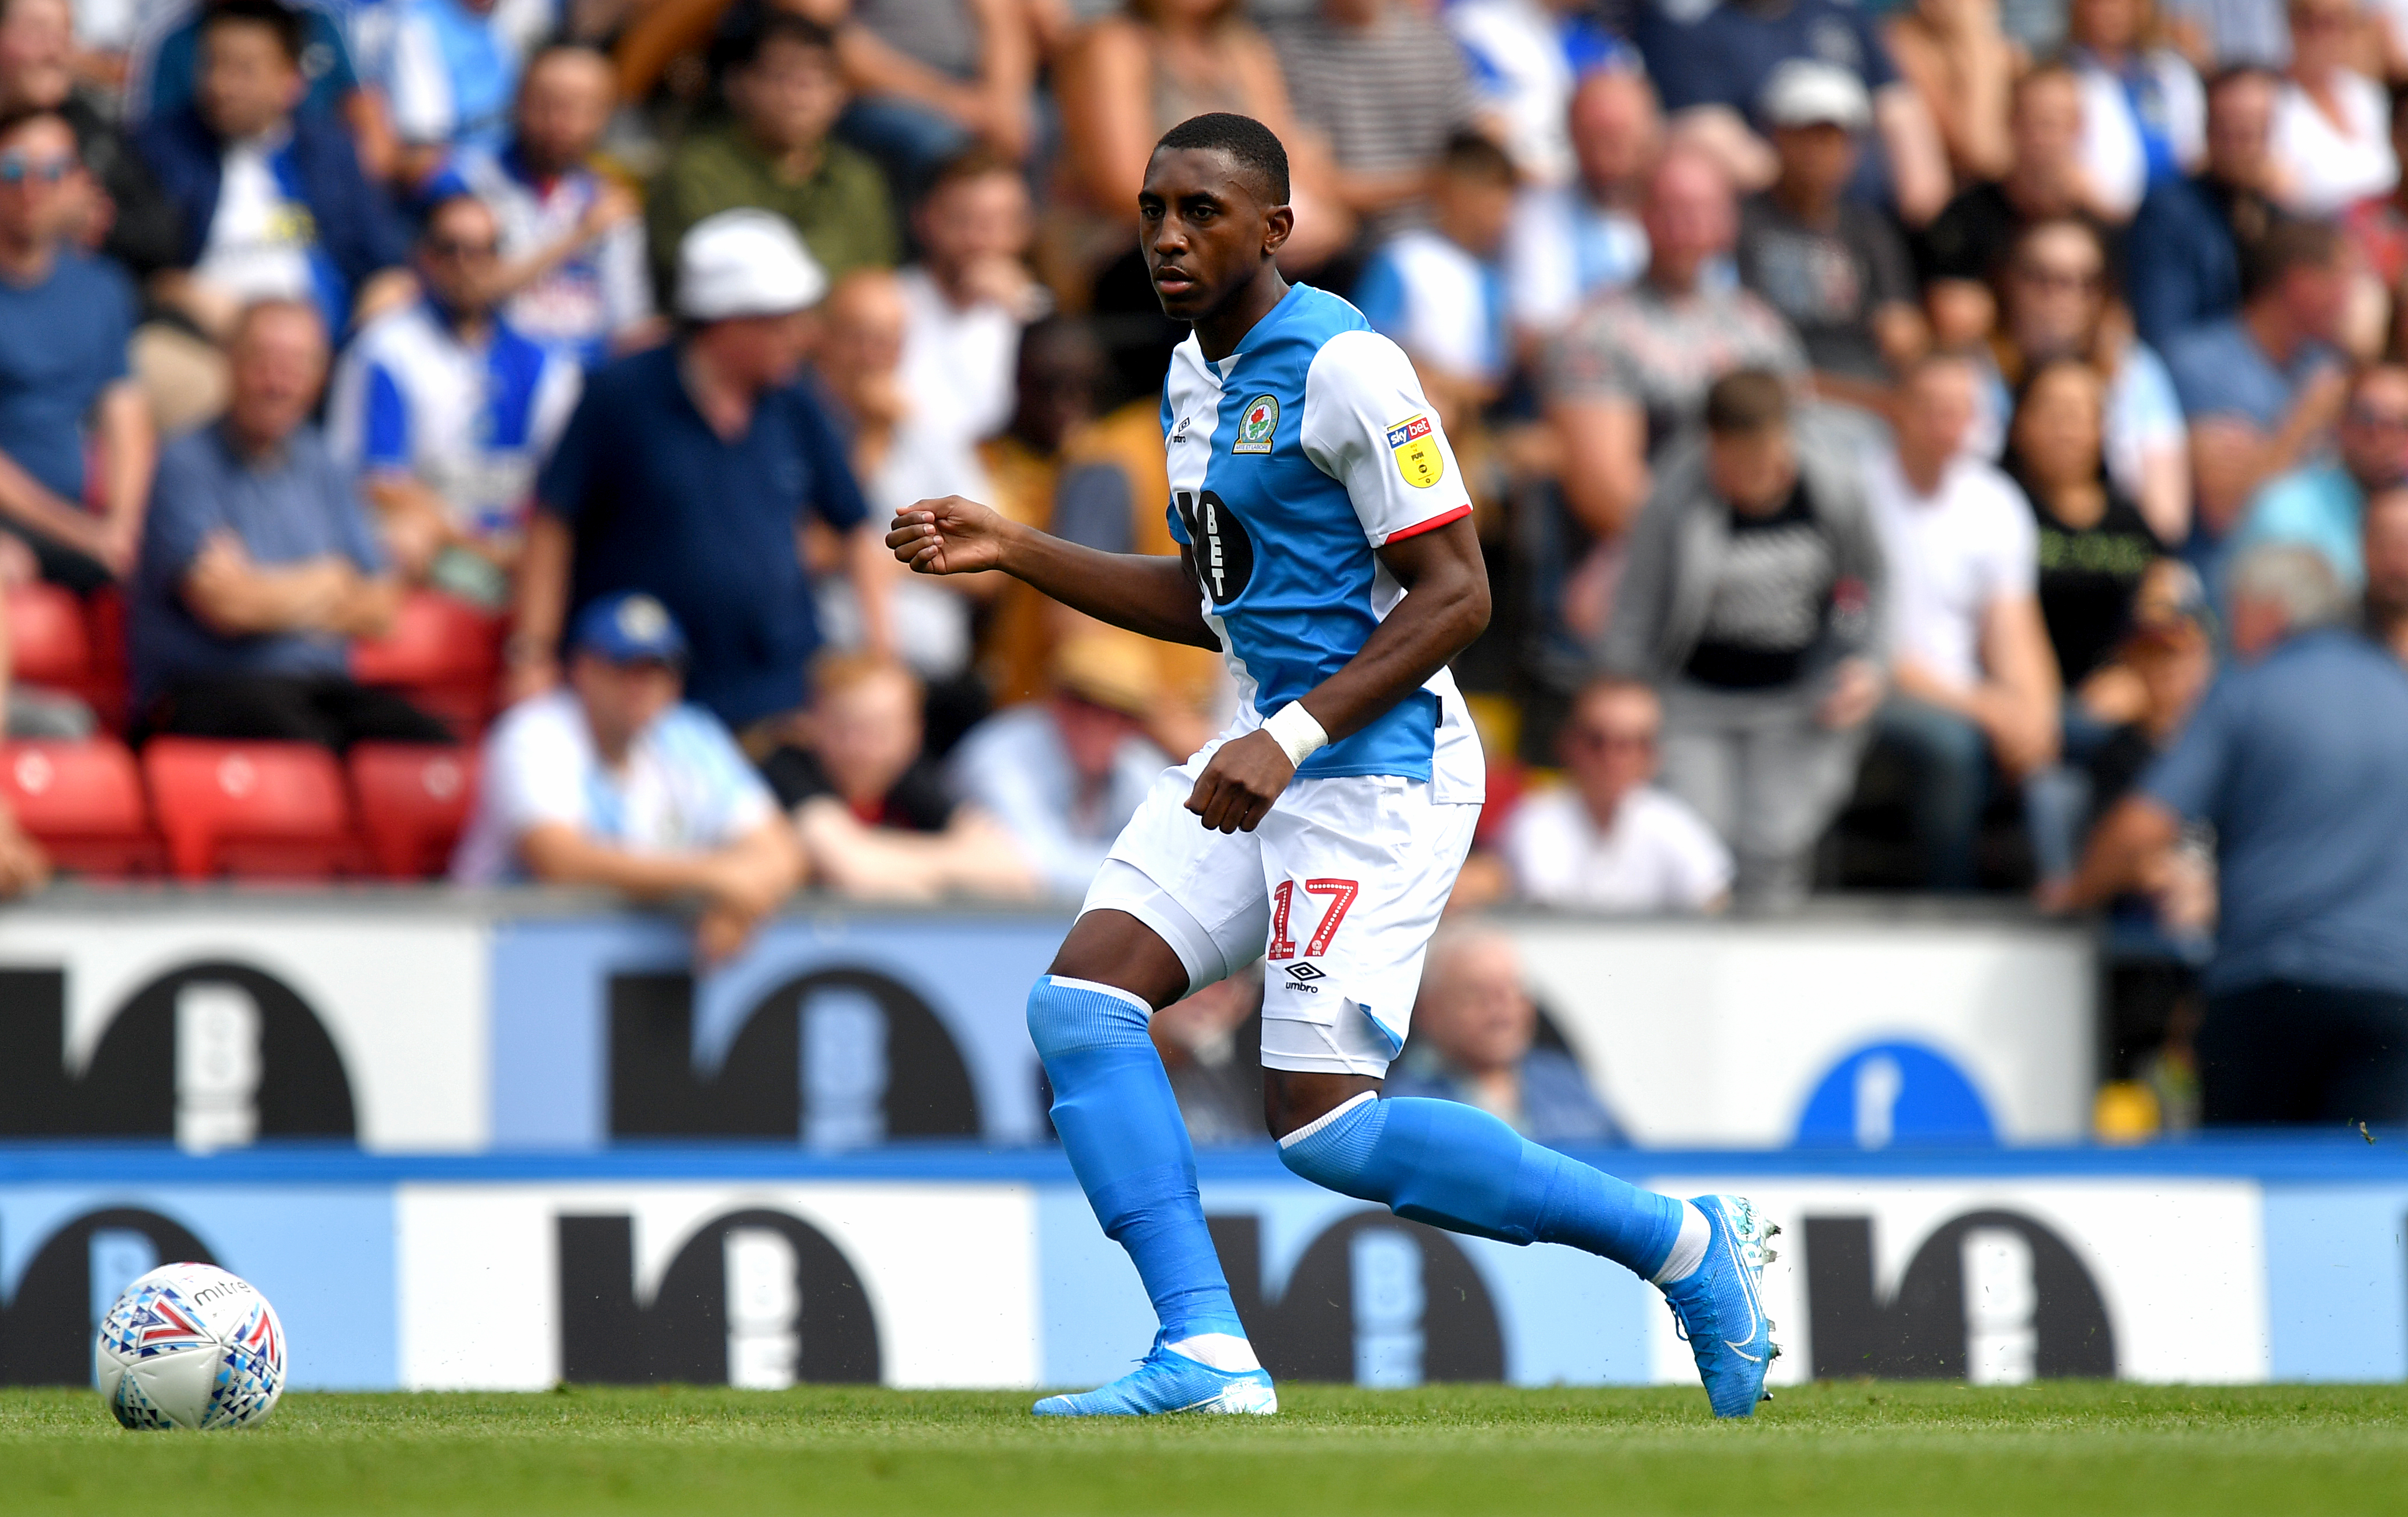 Blackburn Rovers v Charlton Athletic - Sky Bet Championship - Ewood Park